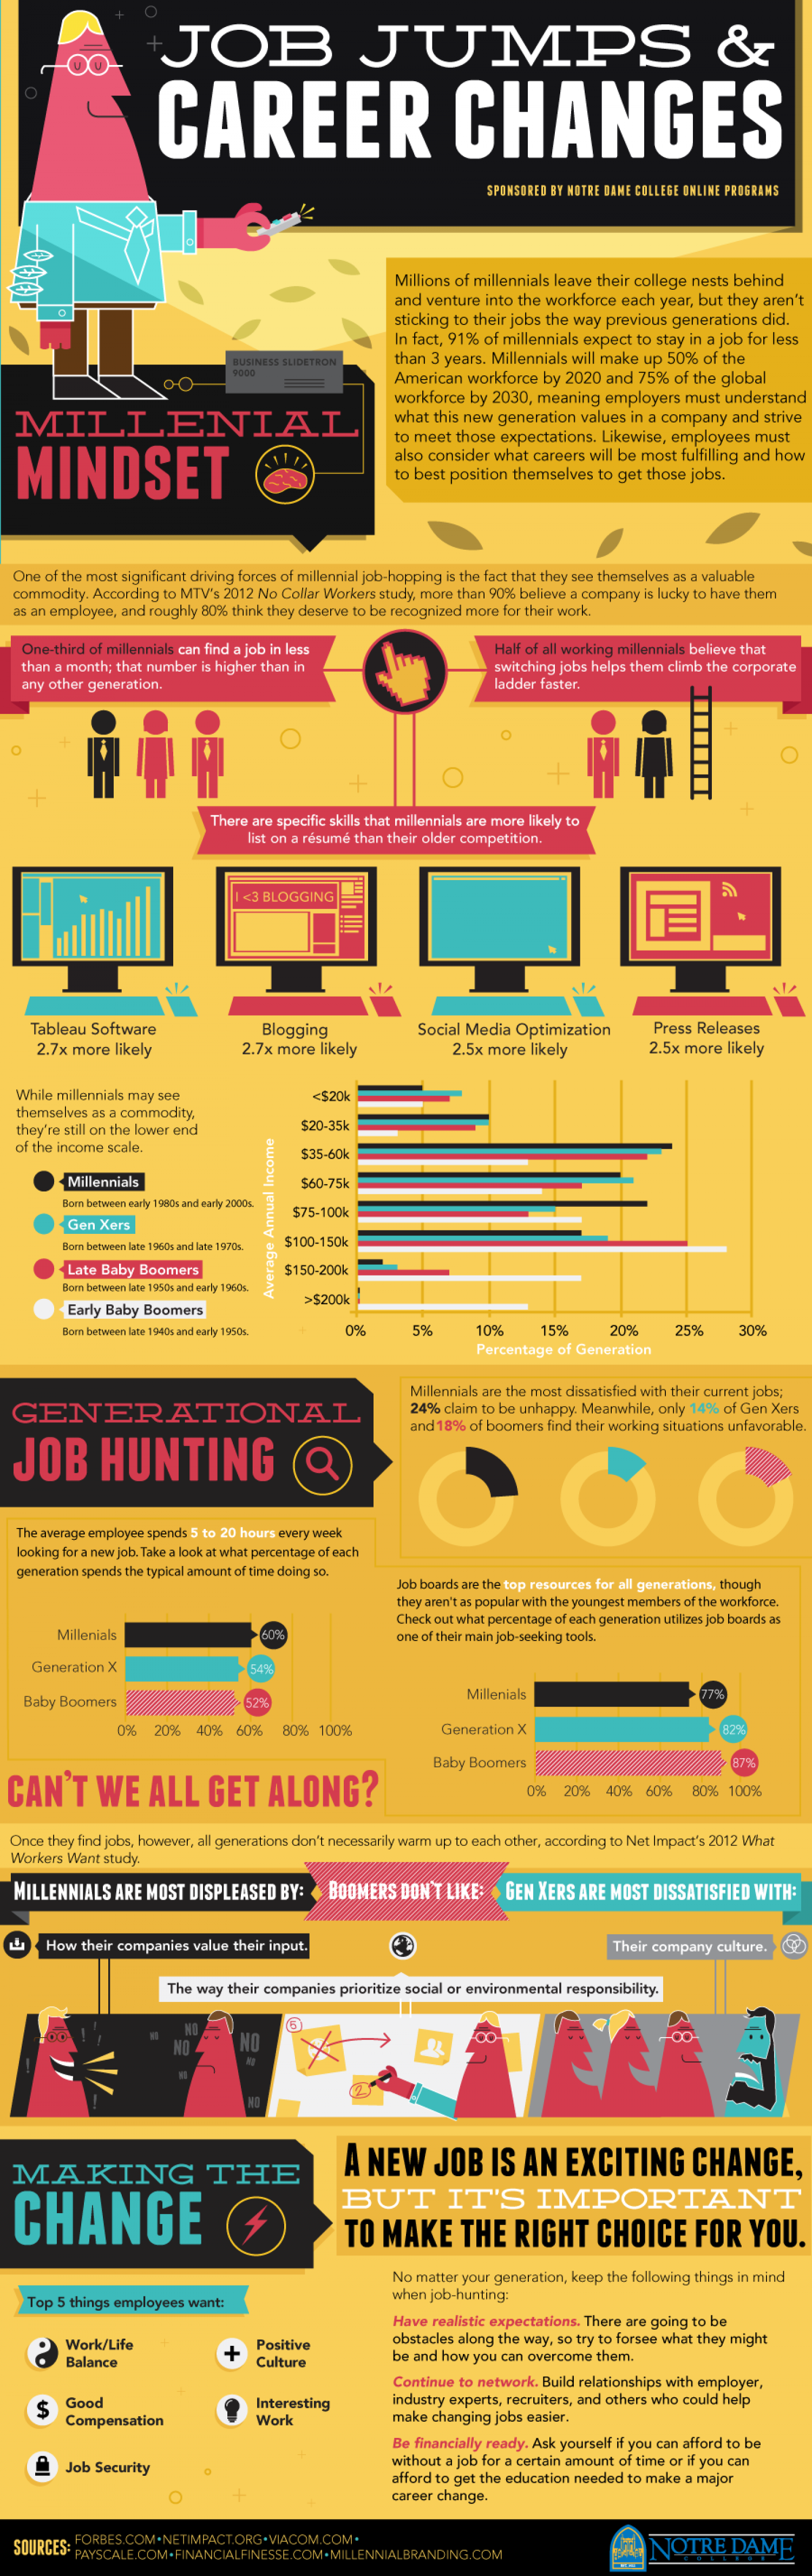 Job Jumps and Career Changes Infographic